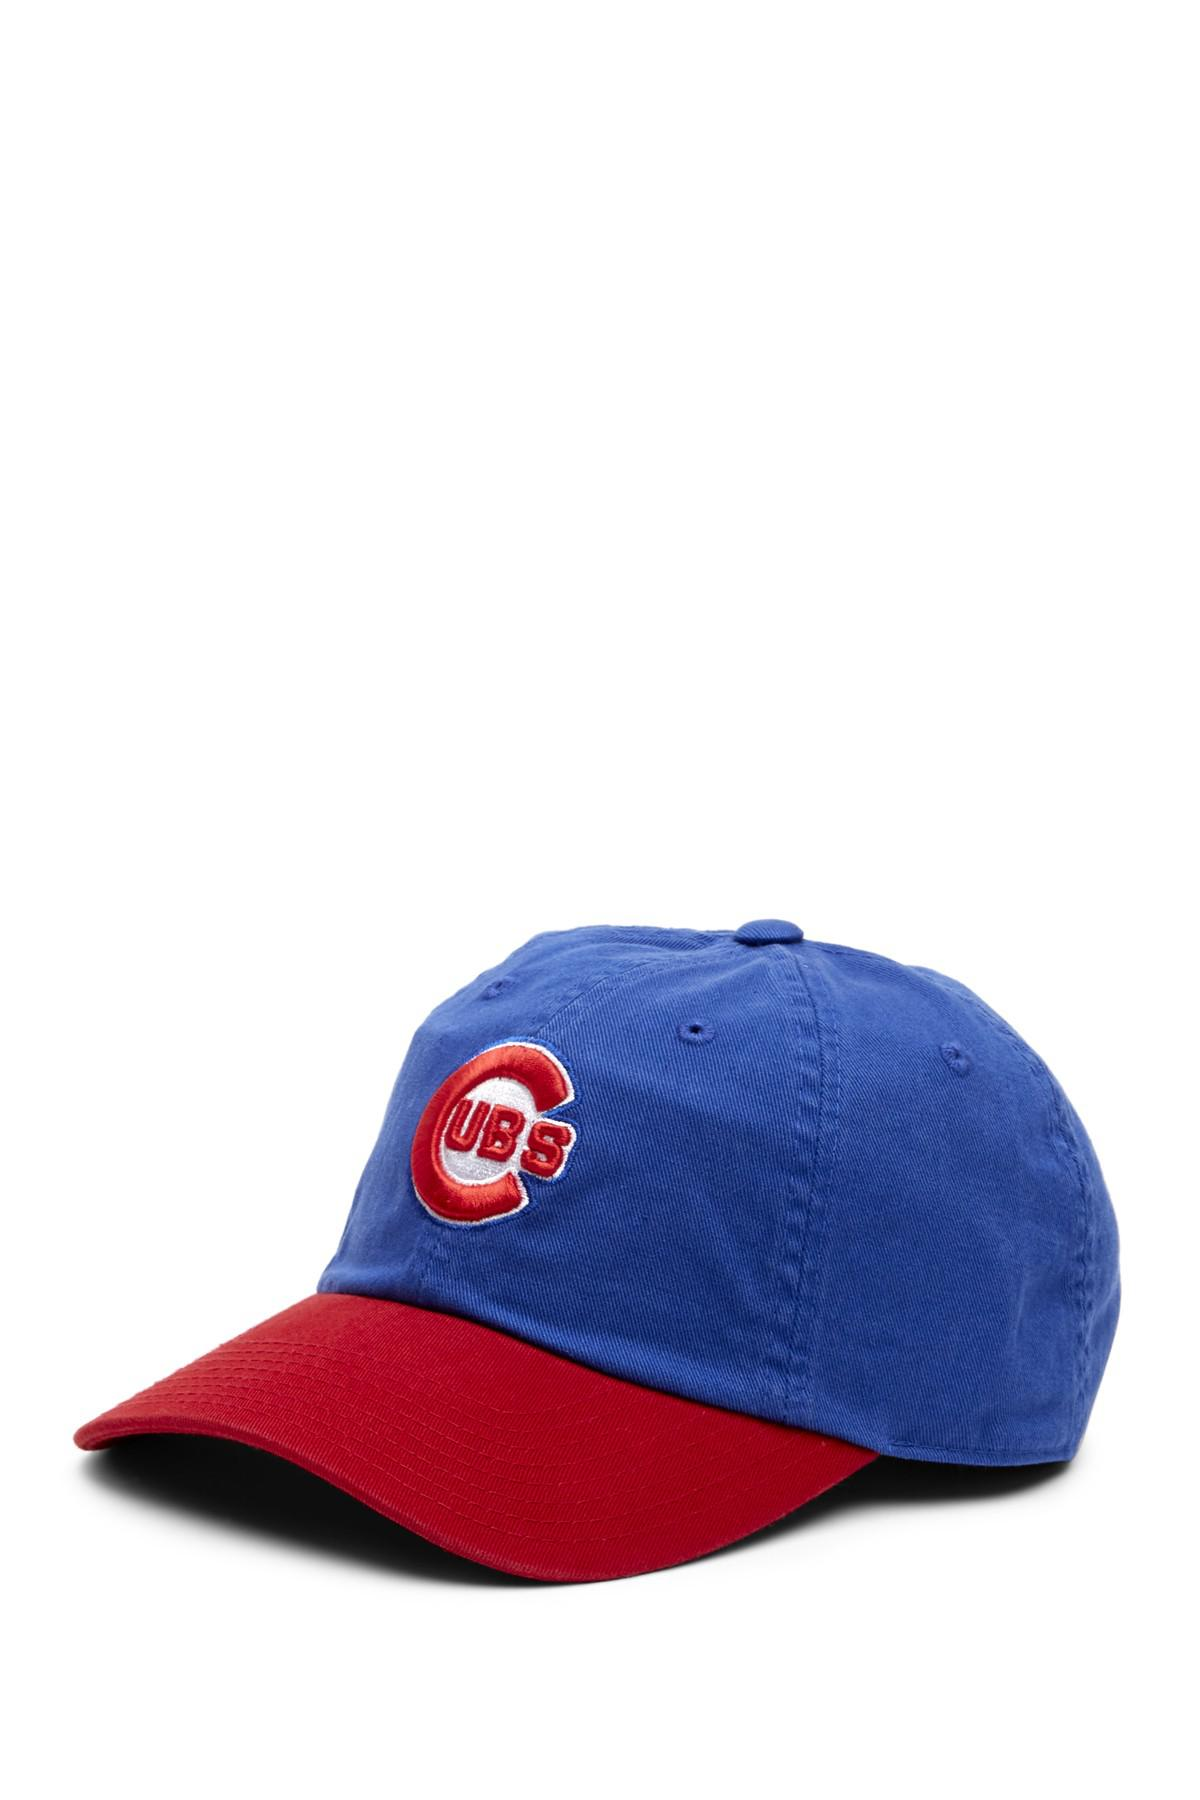 2293109409d64 Lyst - American Needle Ballpark Chicago Cubs Baseball Cap in Blue ...